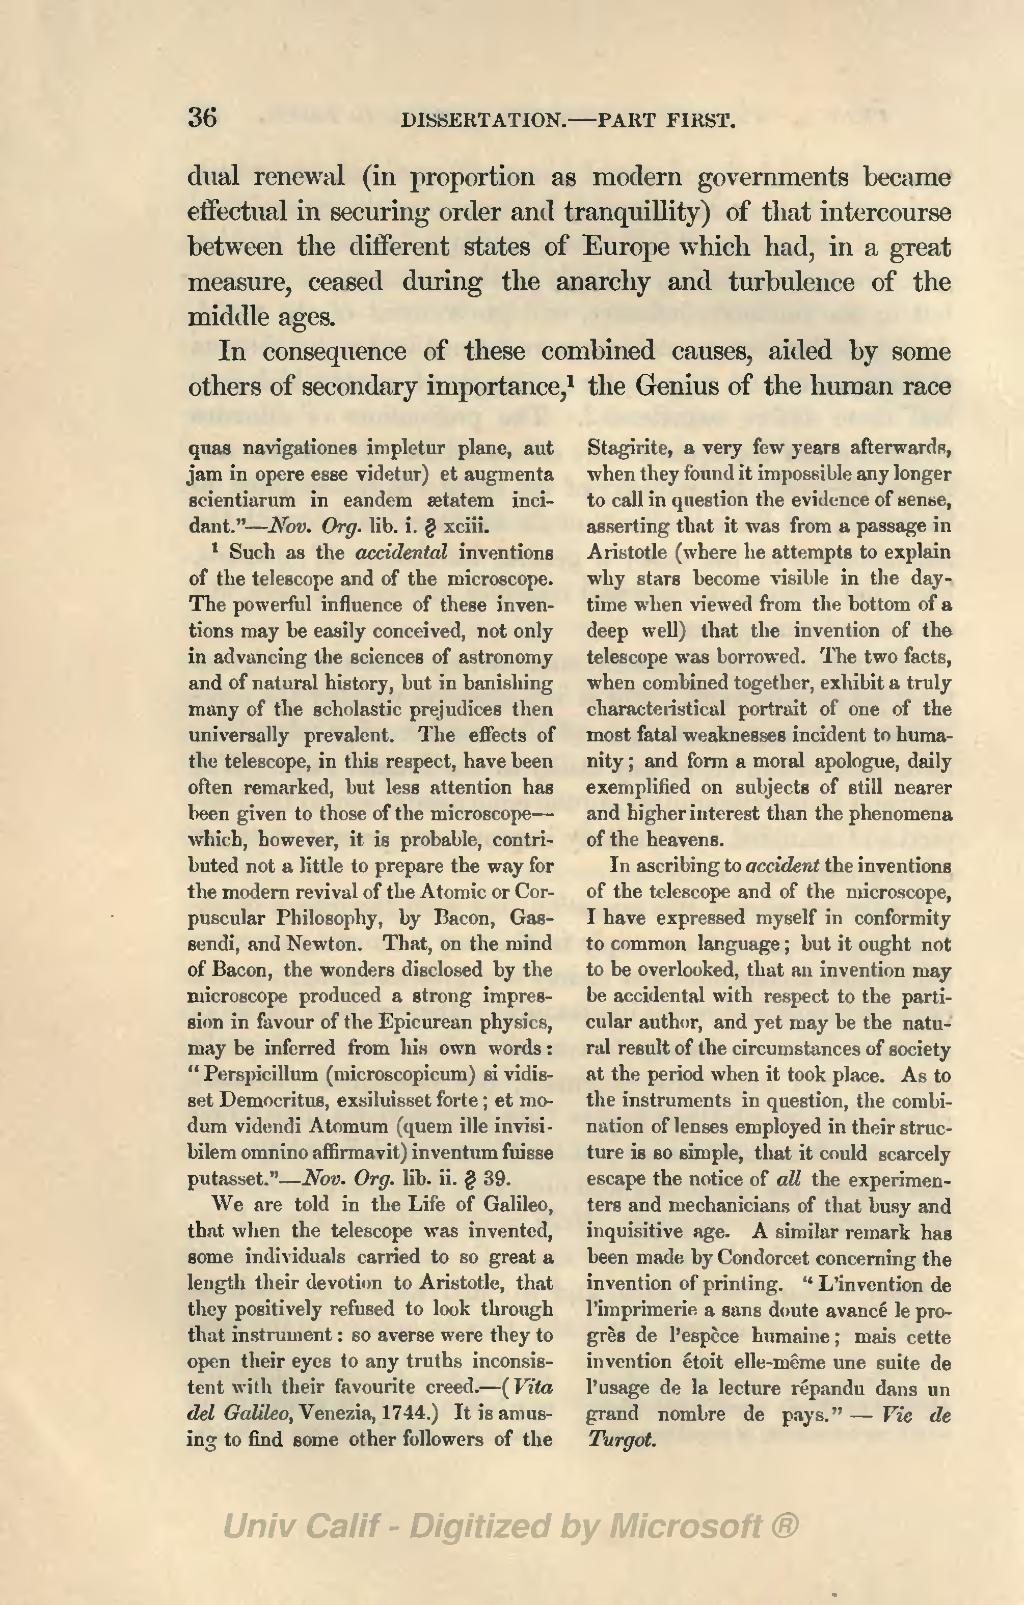 the invention of printing subjected the